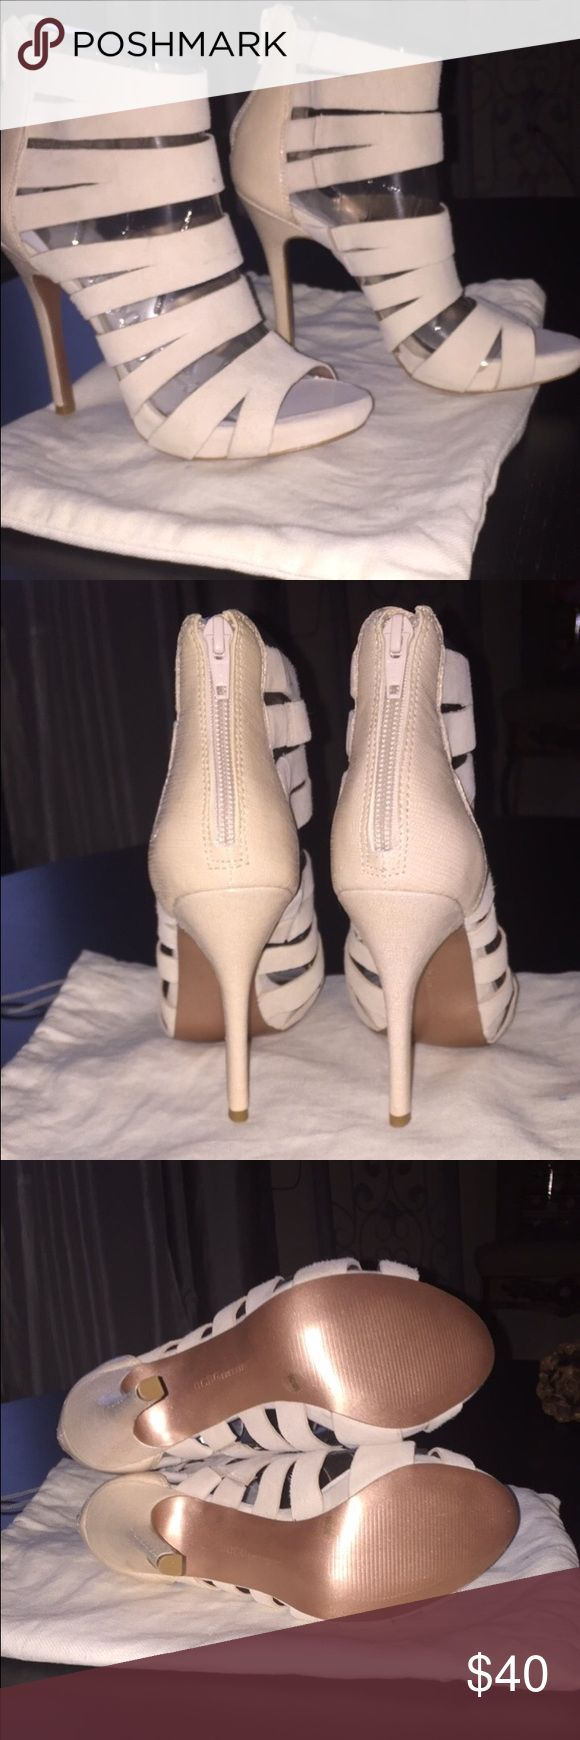 BCBG cream colored caged sandals Beautiful, brand new never worn BCBG open toe caged heels! So gorgeous!! BCBG Shoes Sandals